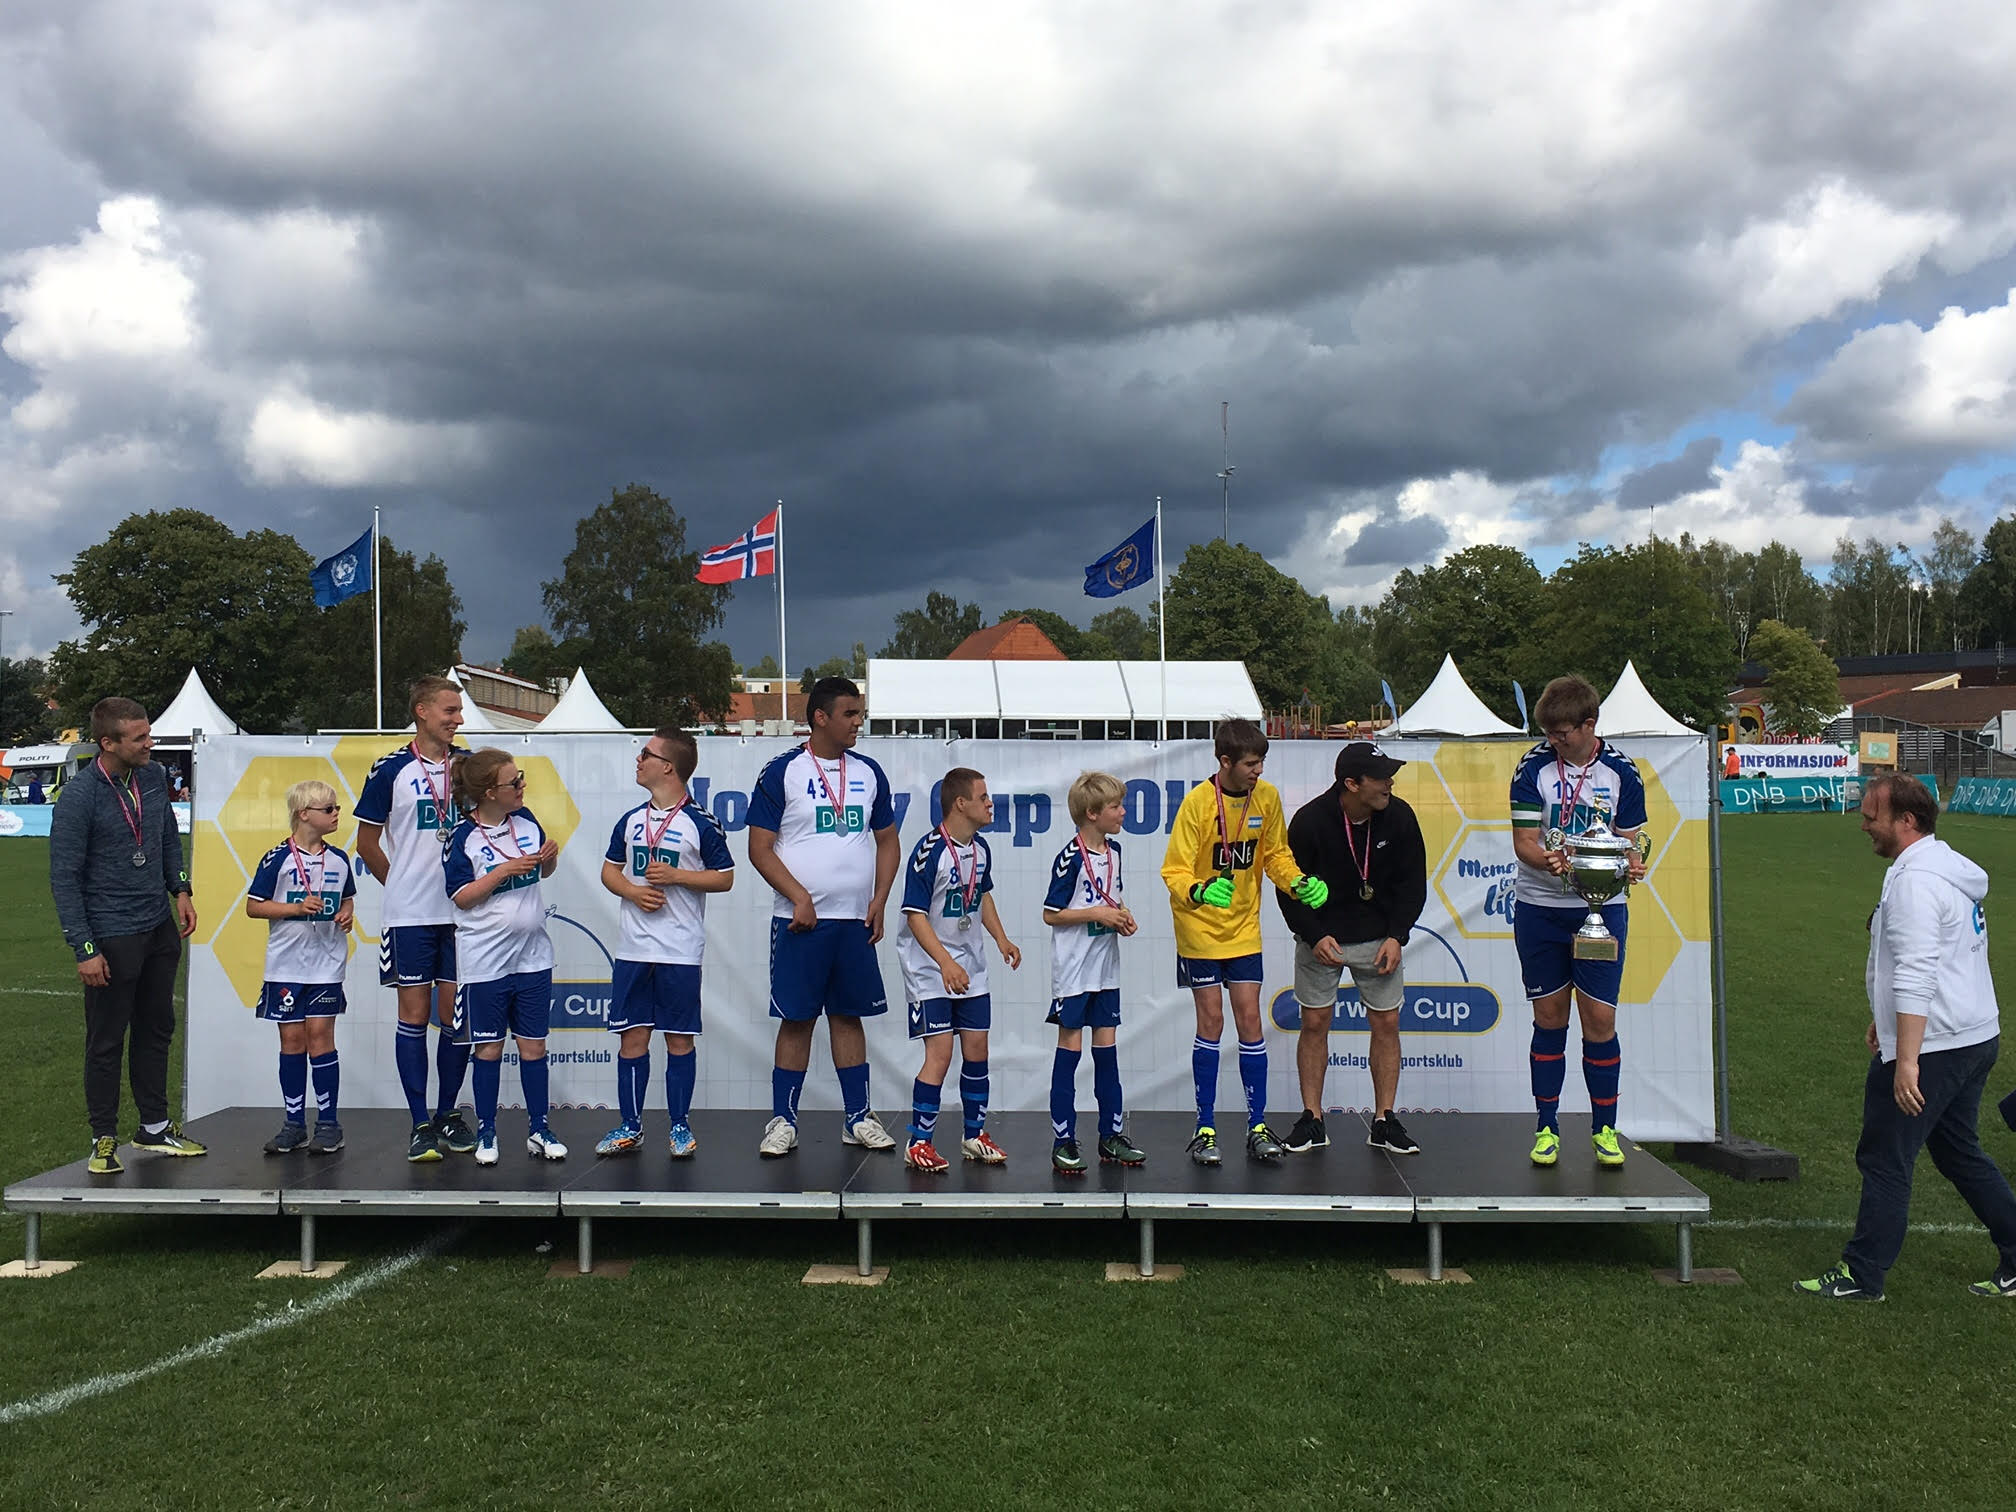 Norway Cup-sølv for Nordstrand Allsport!